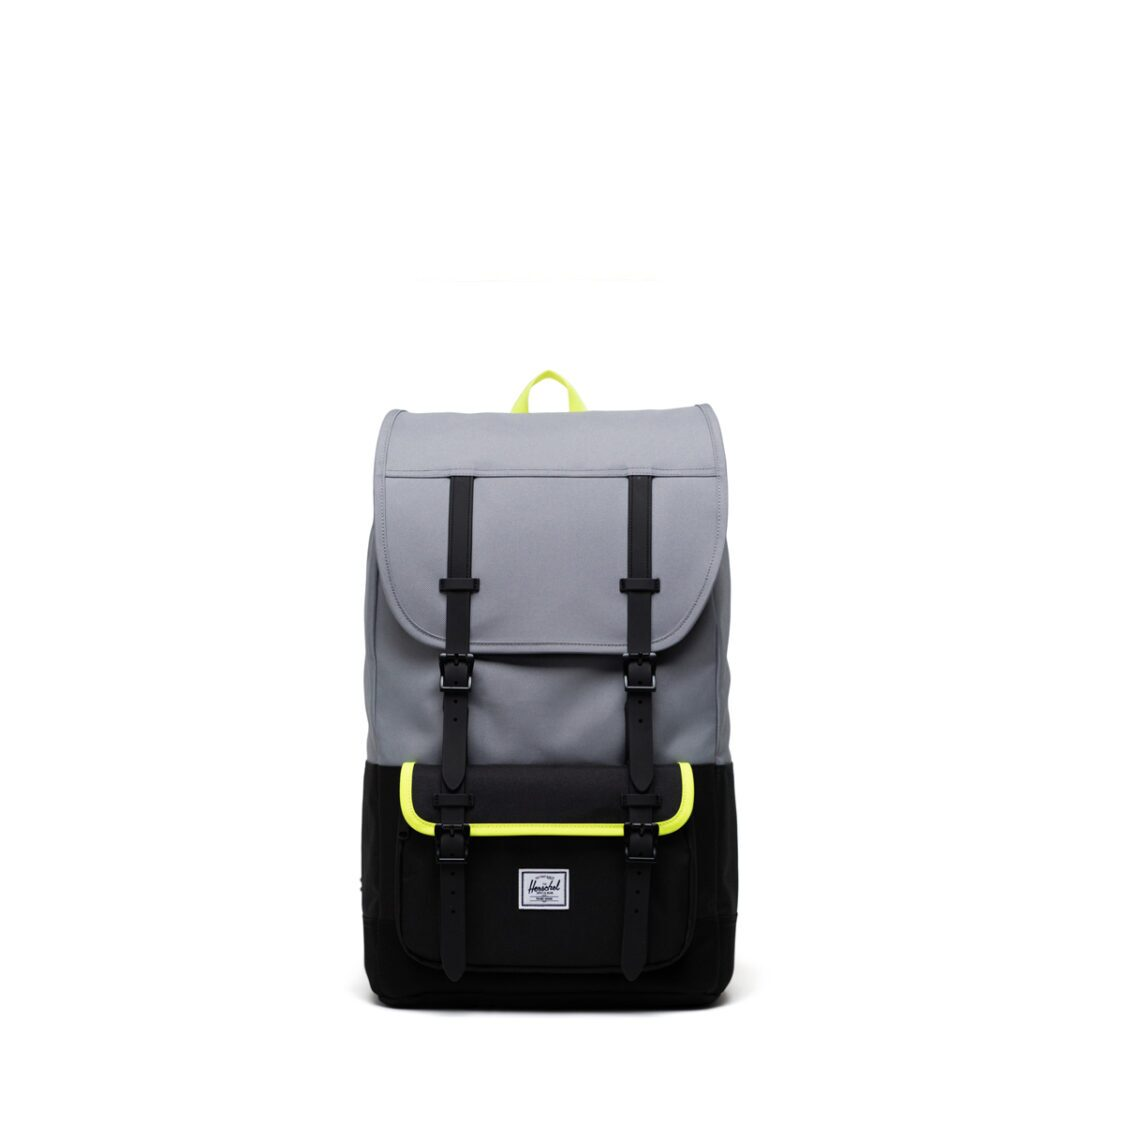 Herschel Little America Pro GreyBlackSafety Yellow Backpack 11038-04942-OS